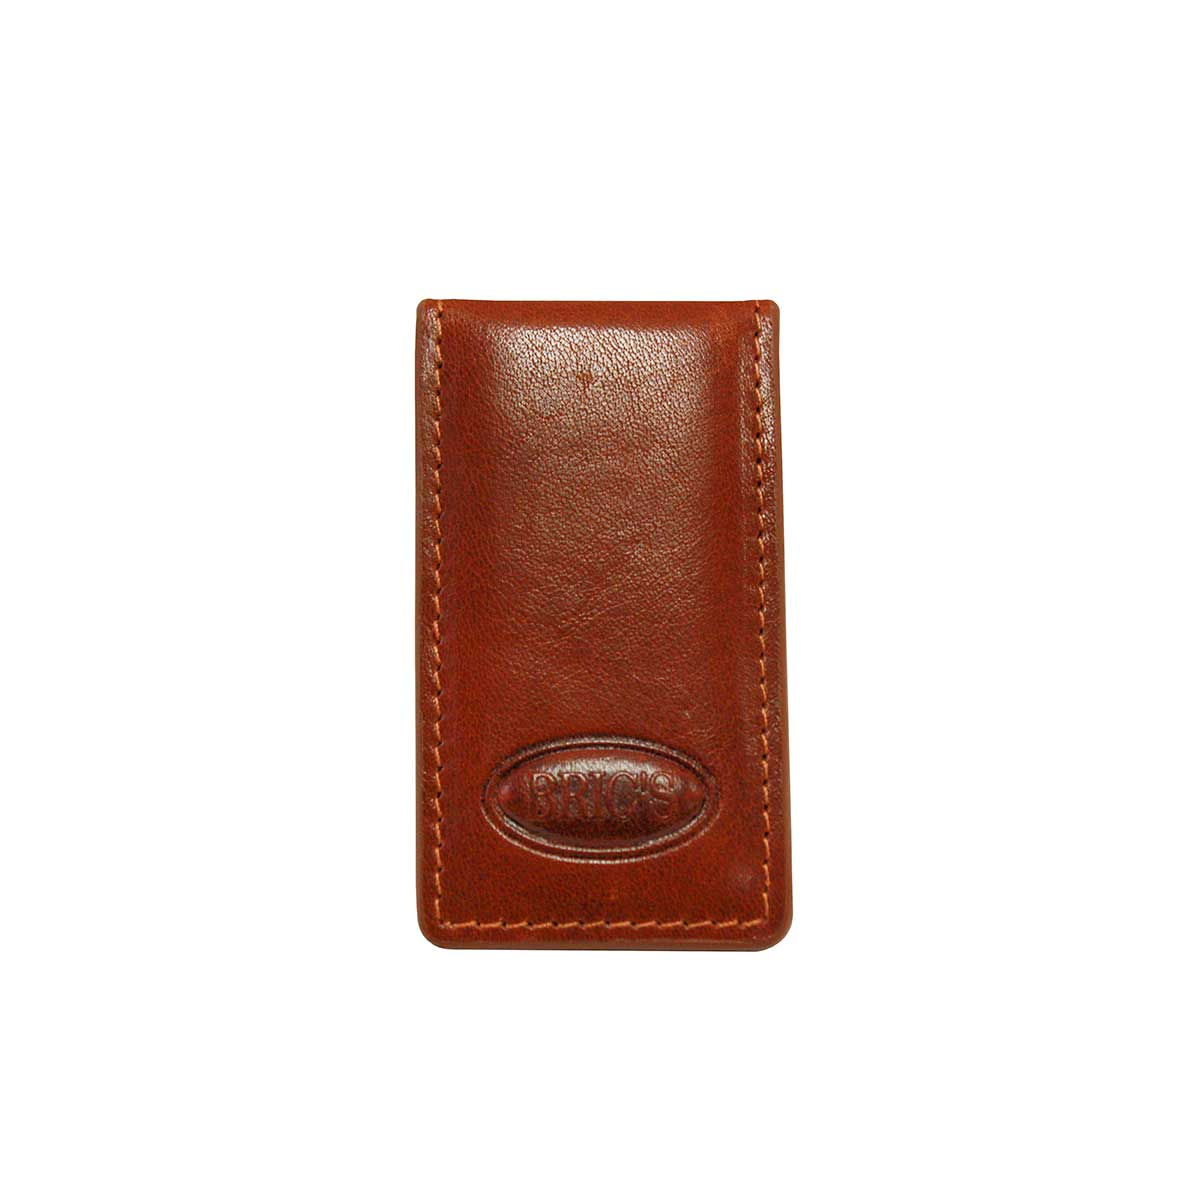 Monte Rosa Padded Money Clip by Brics (Color: Tobacco)